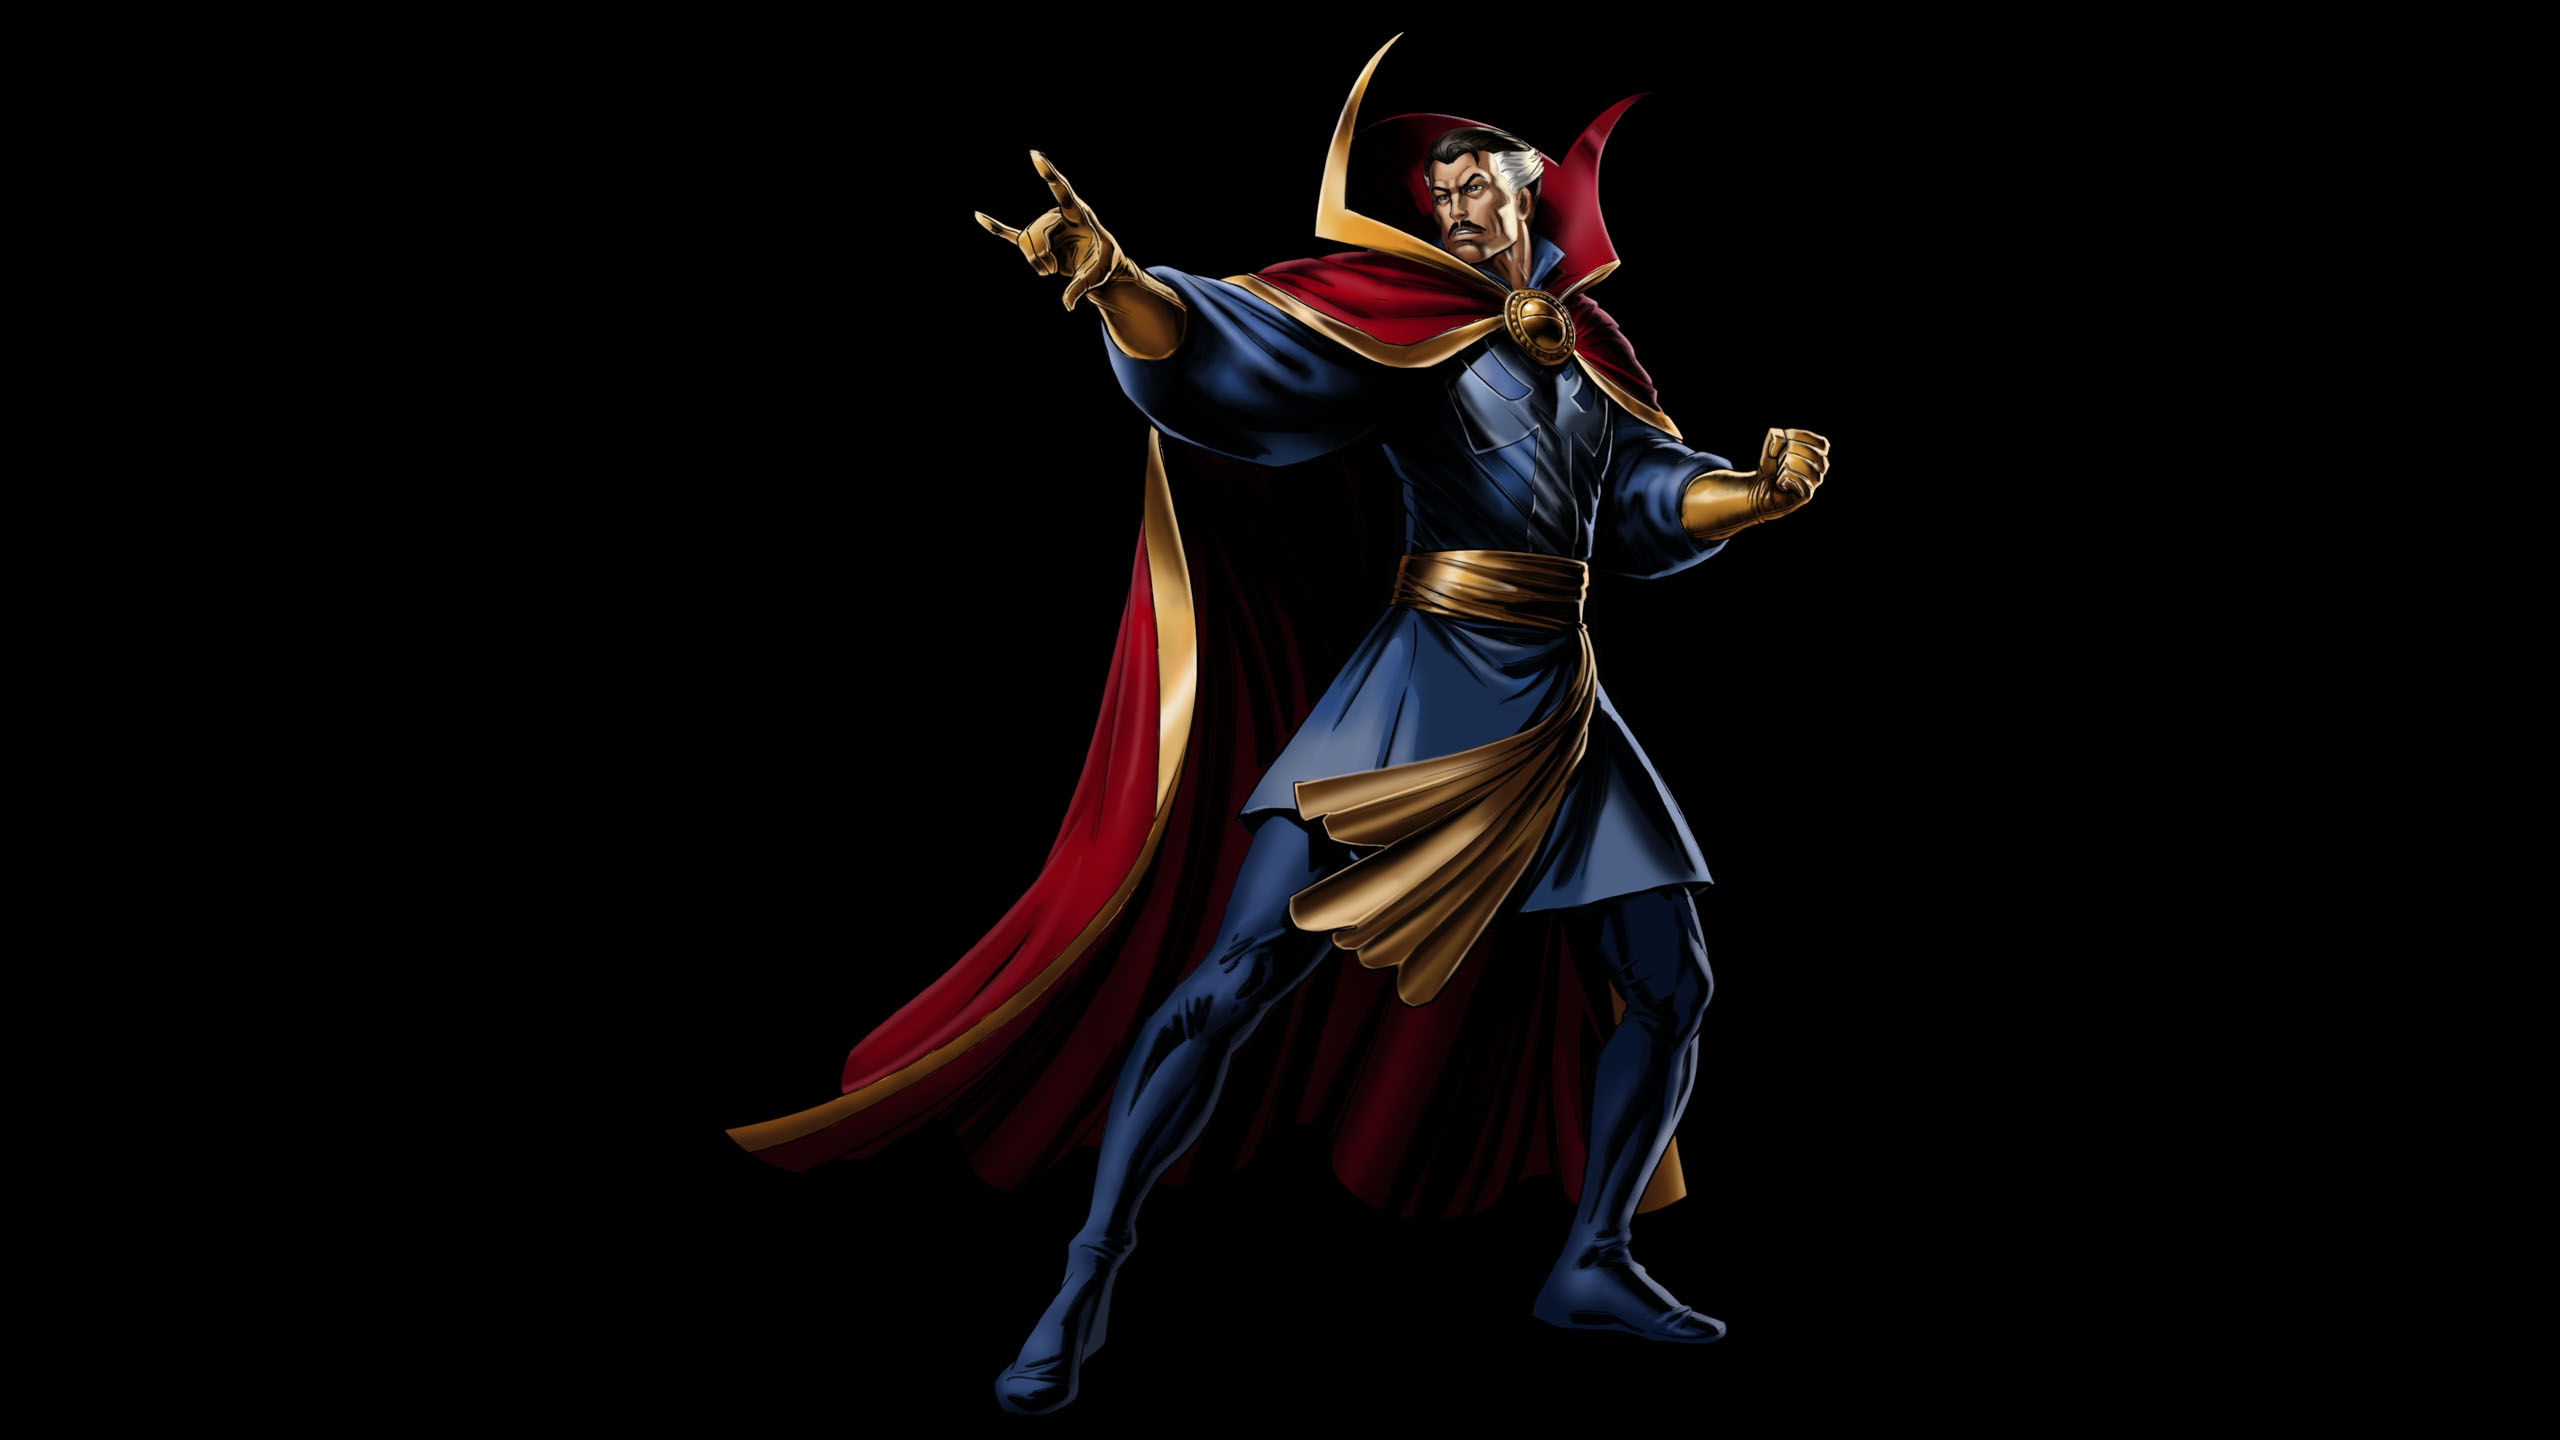 dr strange wallpapers hd | page 3 of 3 | wallpaper.wiki